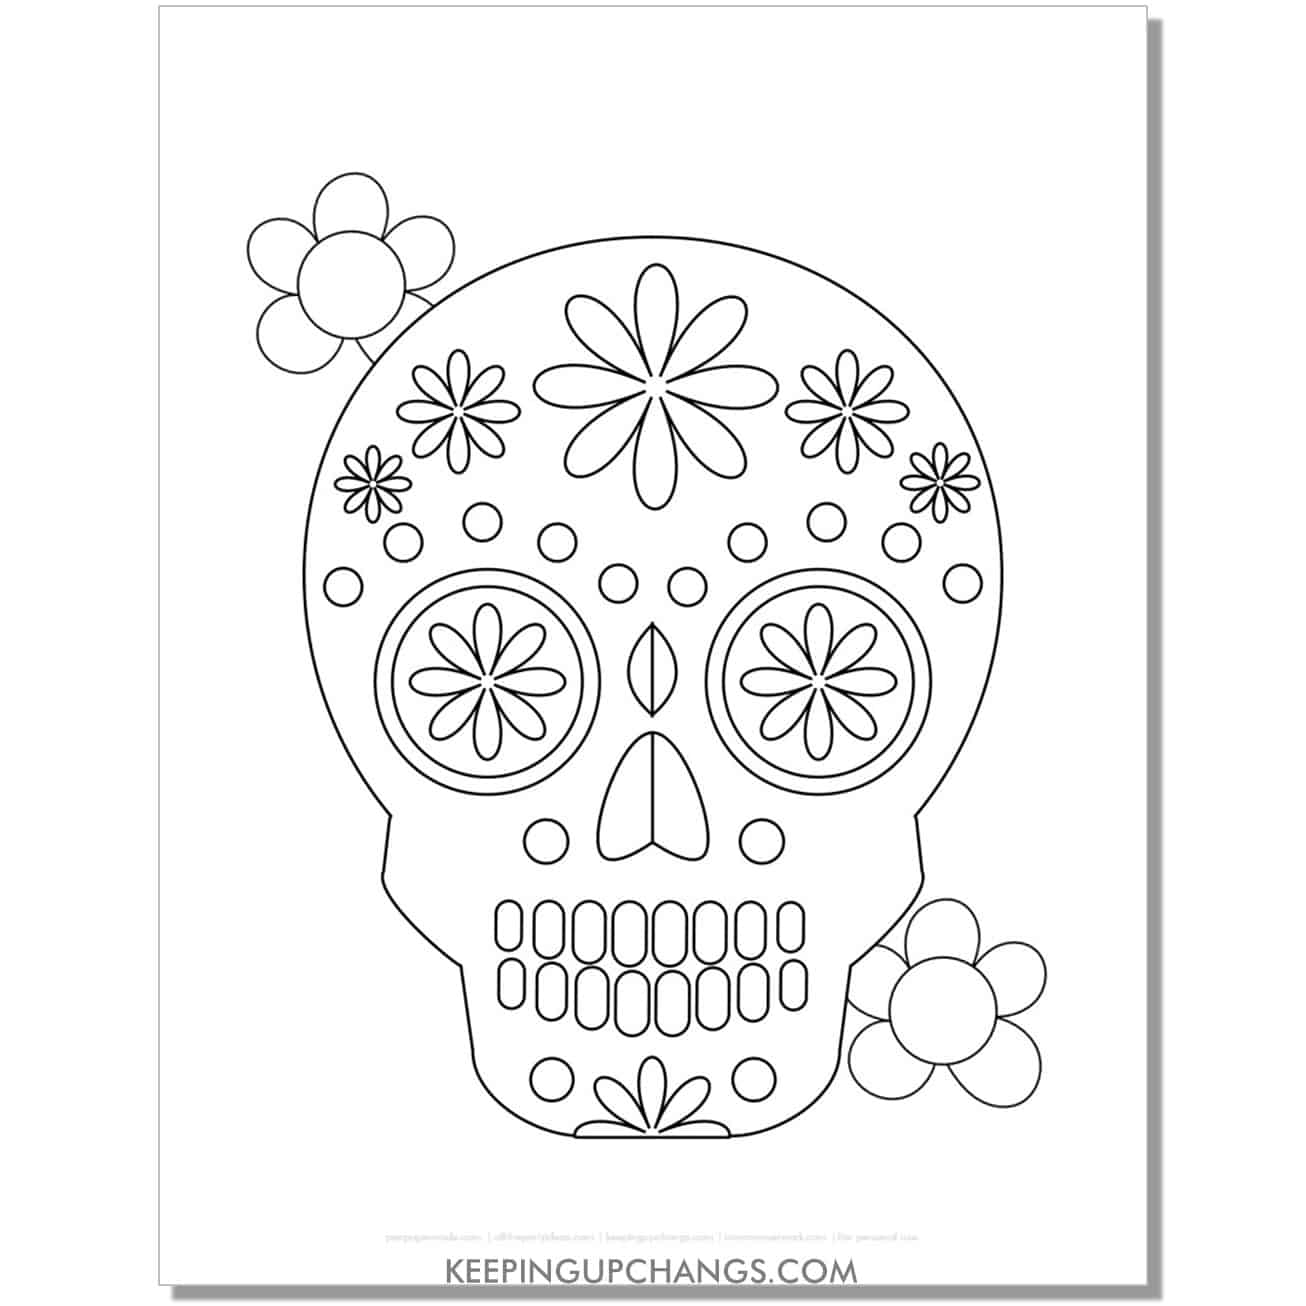 free day of the dead sugar skull for kids coloring page.